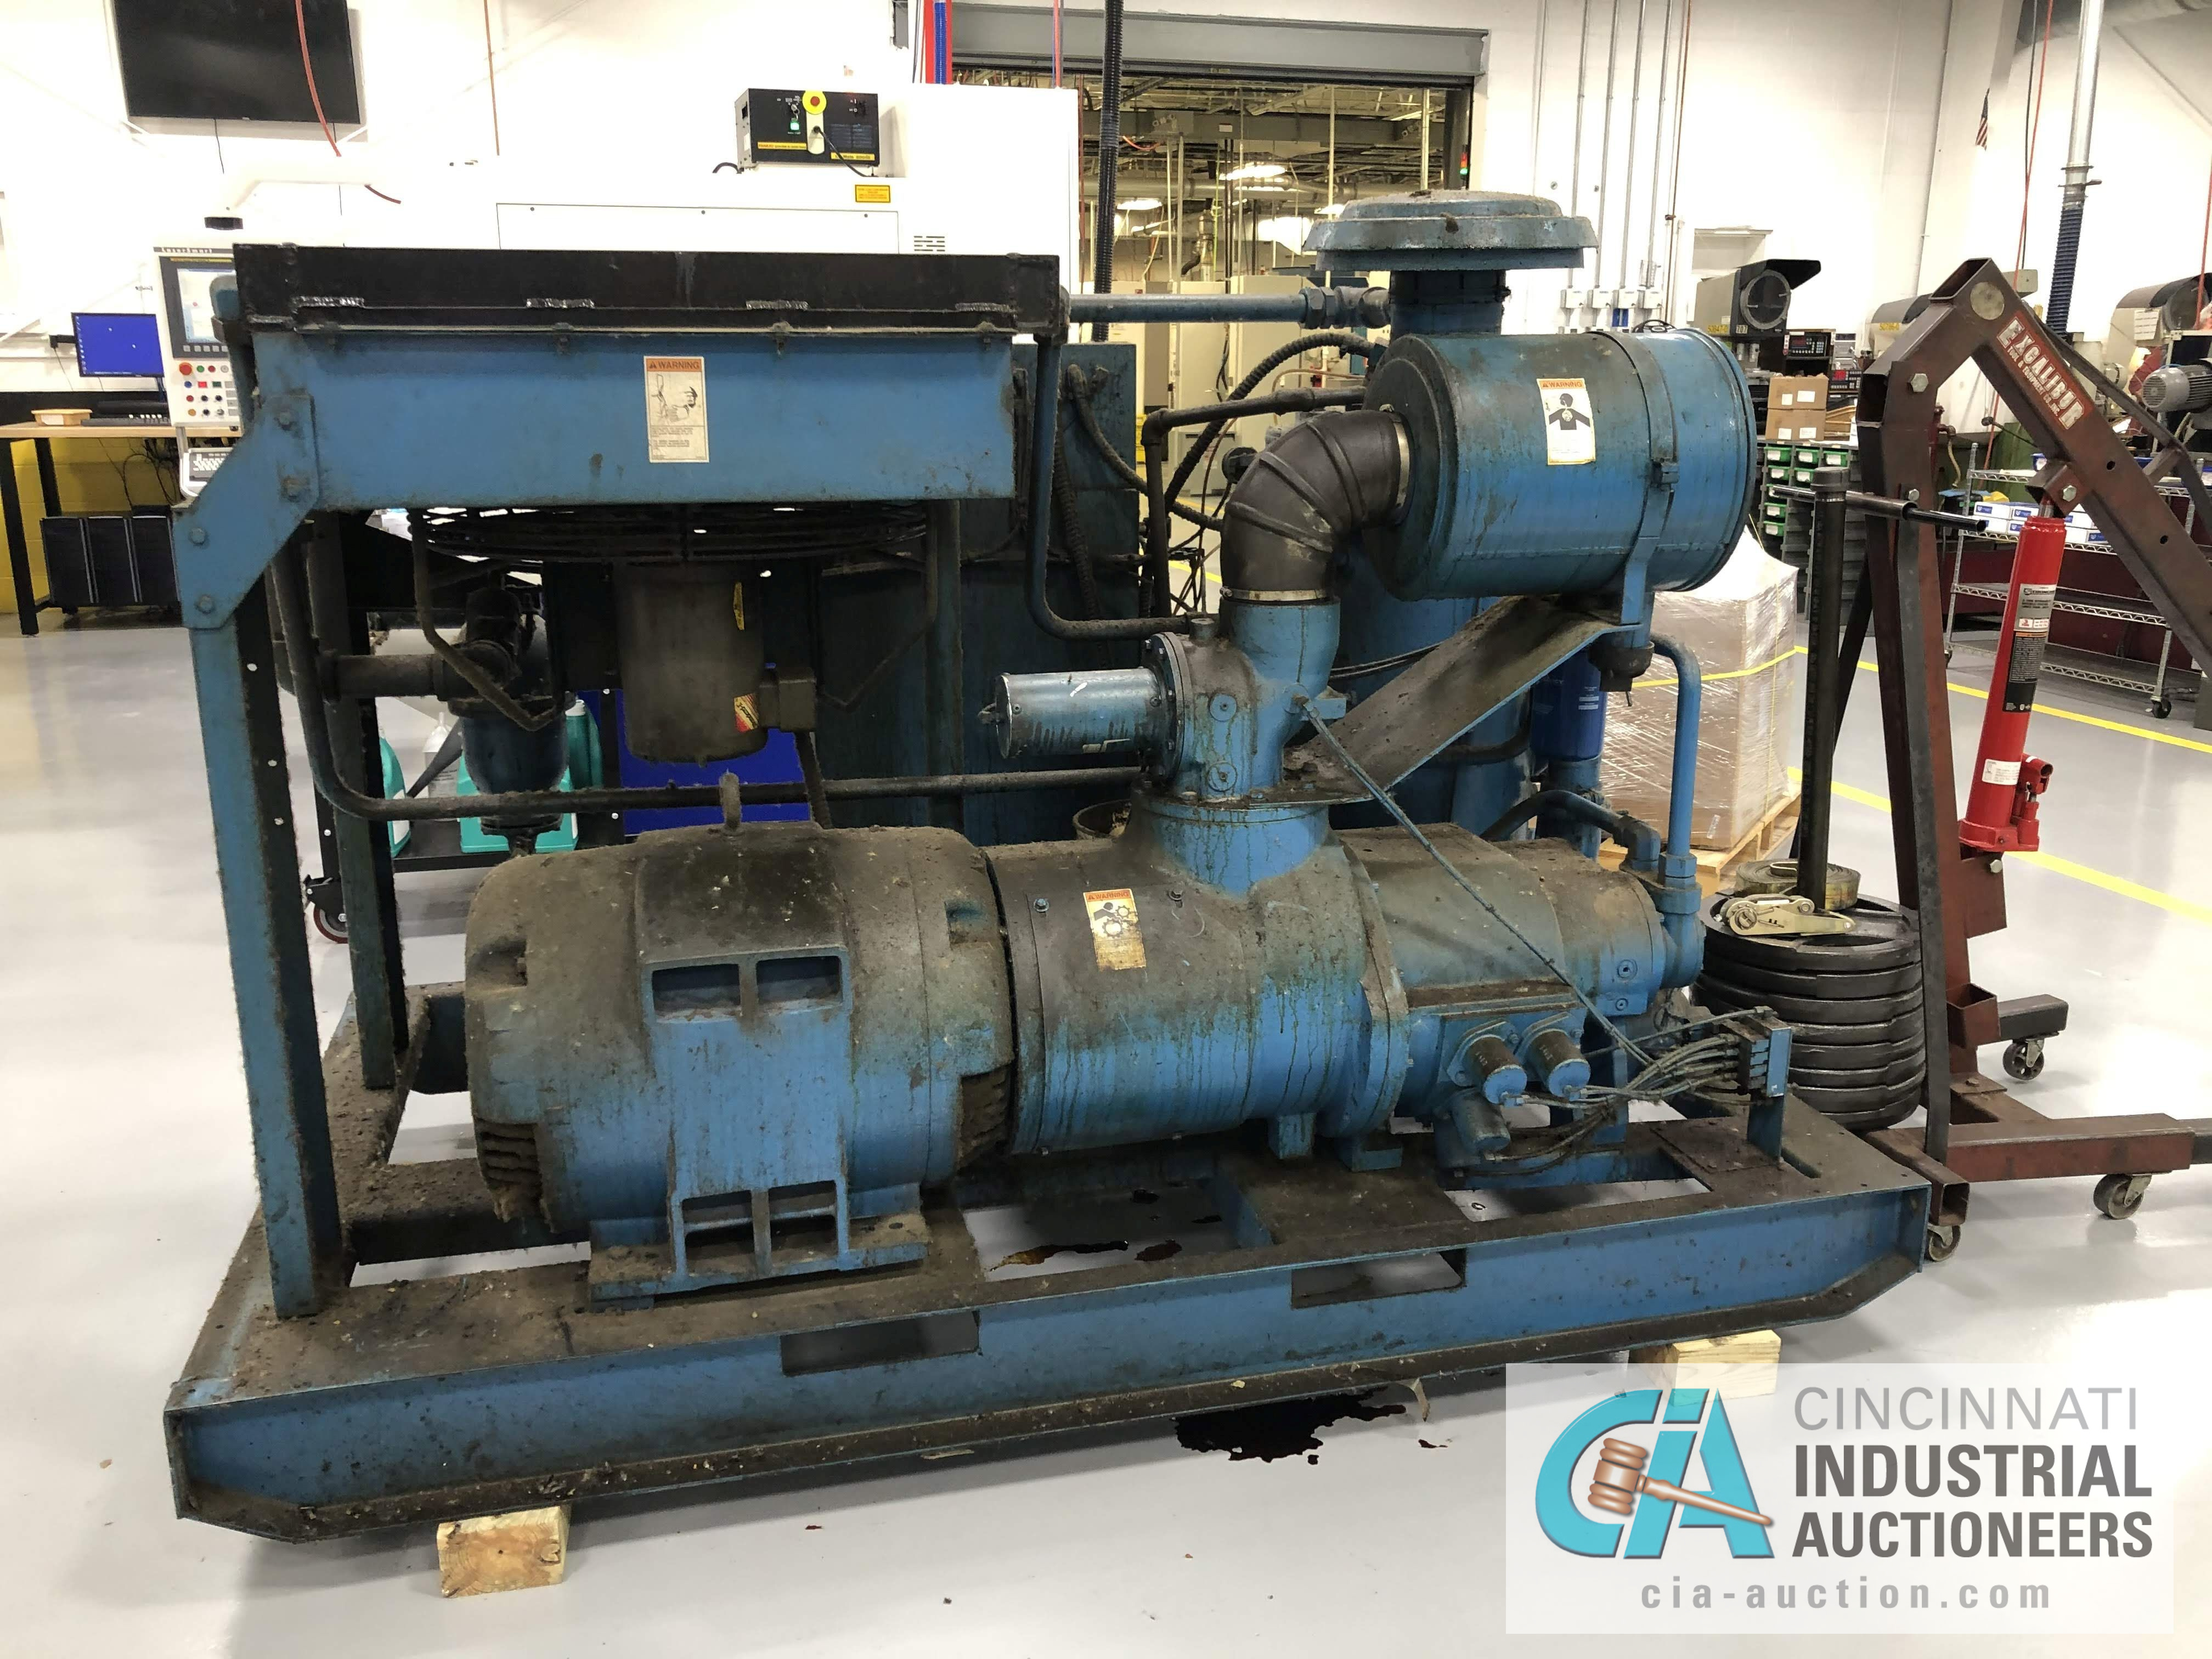 100 HP QUINCY MODEL QSI500-ANA31ED ROTARY SCREW AIR COMPRESSOR - $50.00 Rigging Fee Due to Onsite - Image 3 of 4